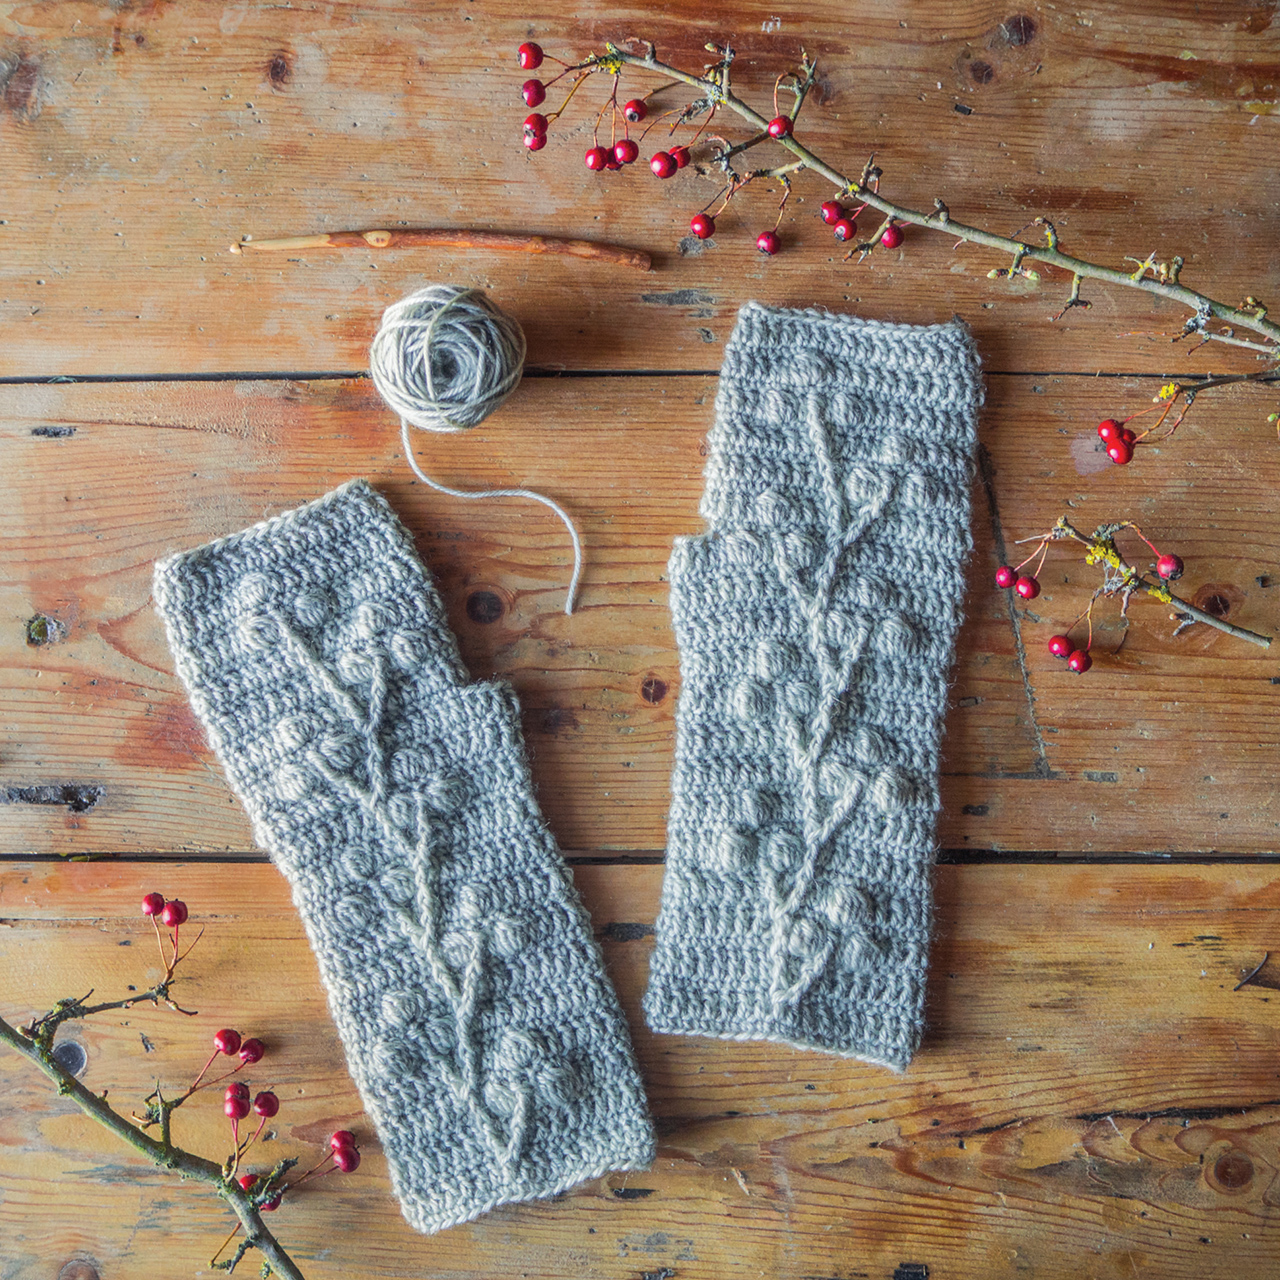 Hawthorn Wrist Warmers from 'Making Winter' by Emma Mitchell.